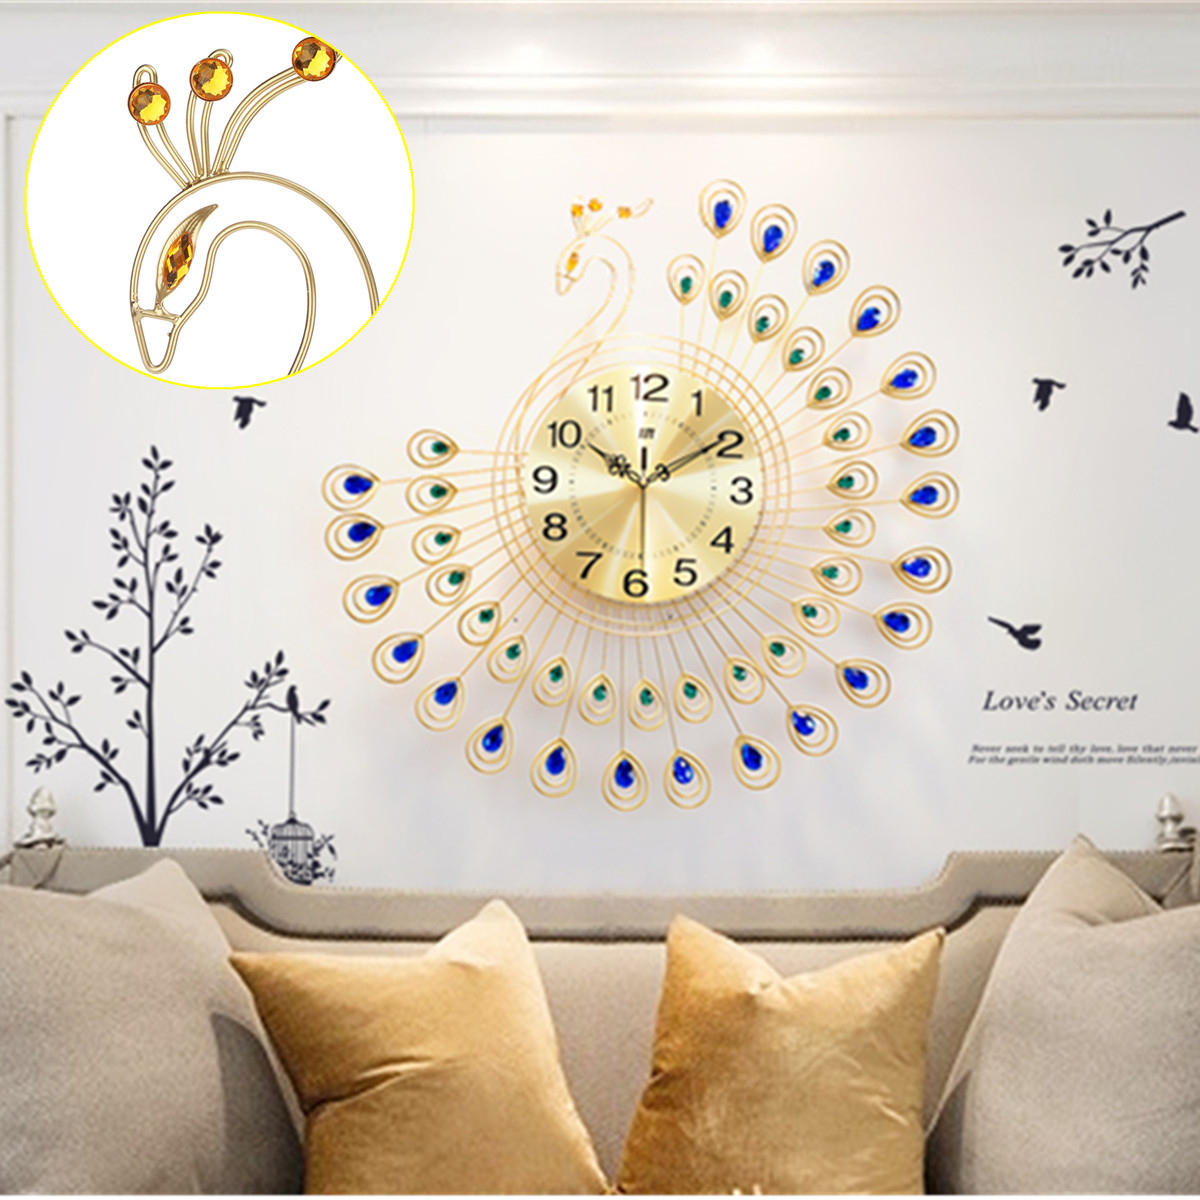 21 inch 3D Large Metal Crystals Decorative Peacock Wall Clock Wall Decor Luxury Diamonds Jewelry Creative Gift for Office/Kitchen/Bedroom/Living Room